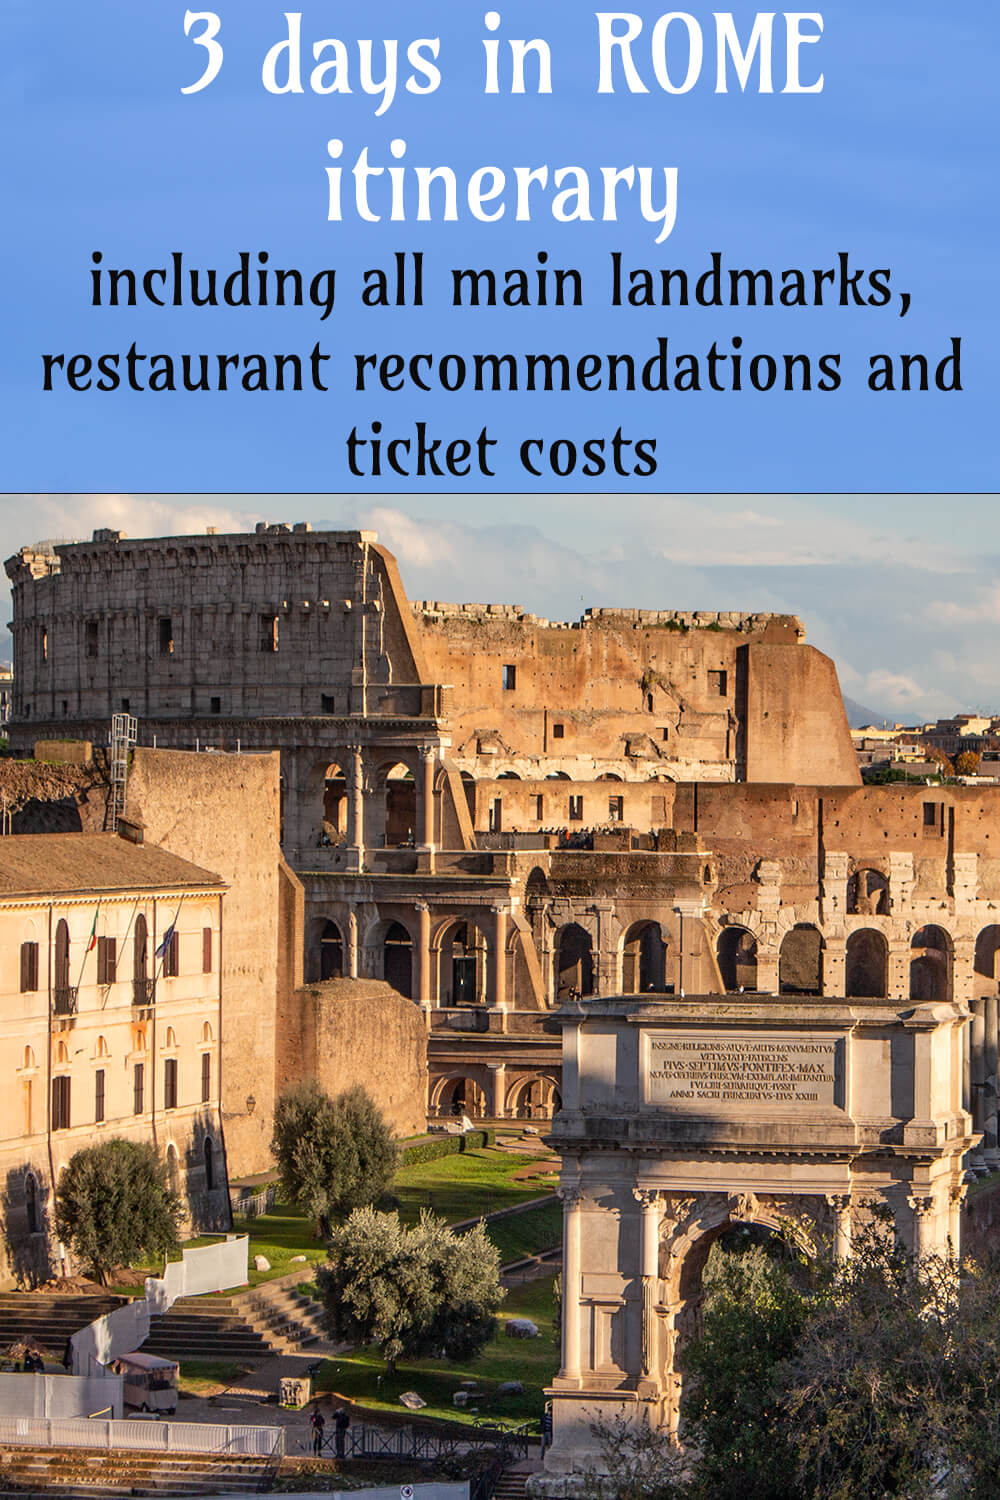 3 days in Rome itinerary with places to see and eat | How to spend 3 days in Rome